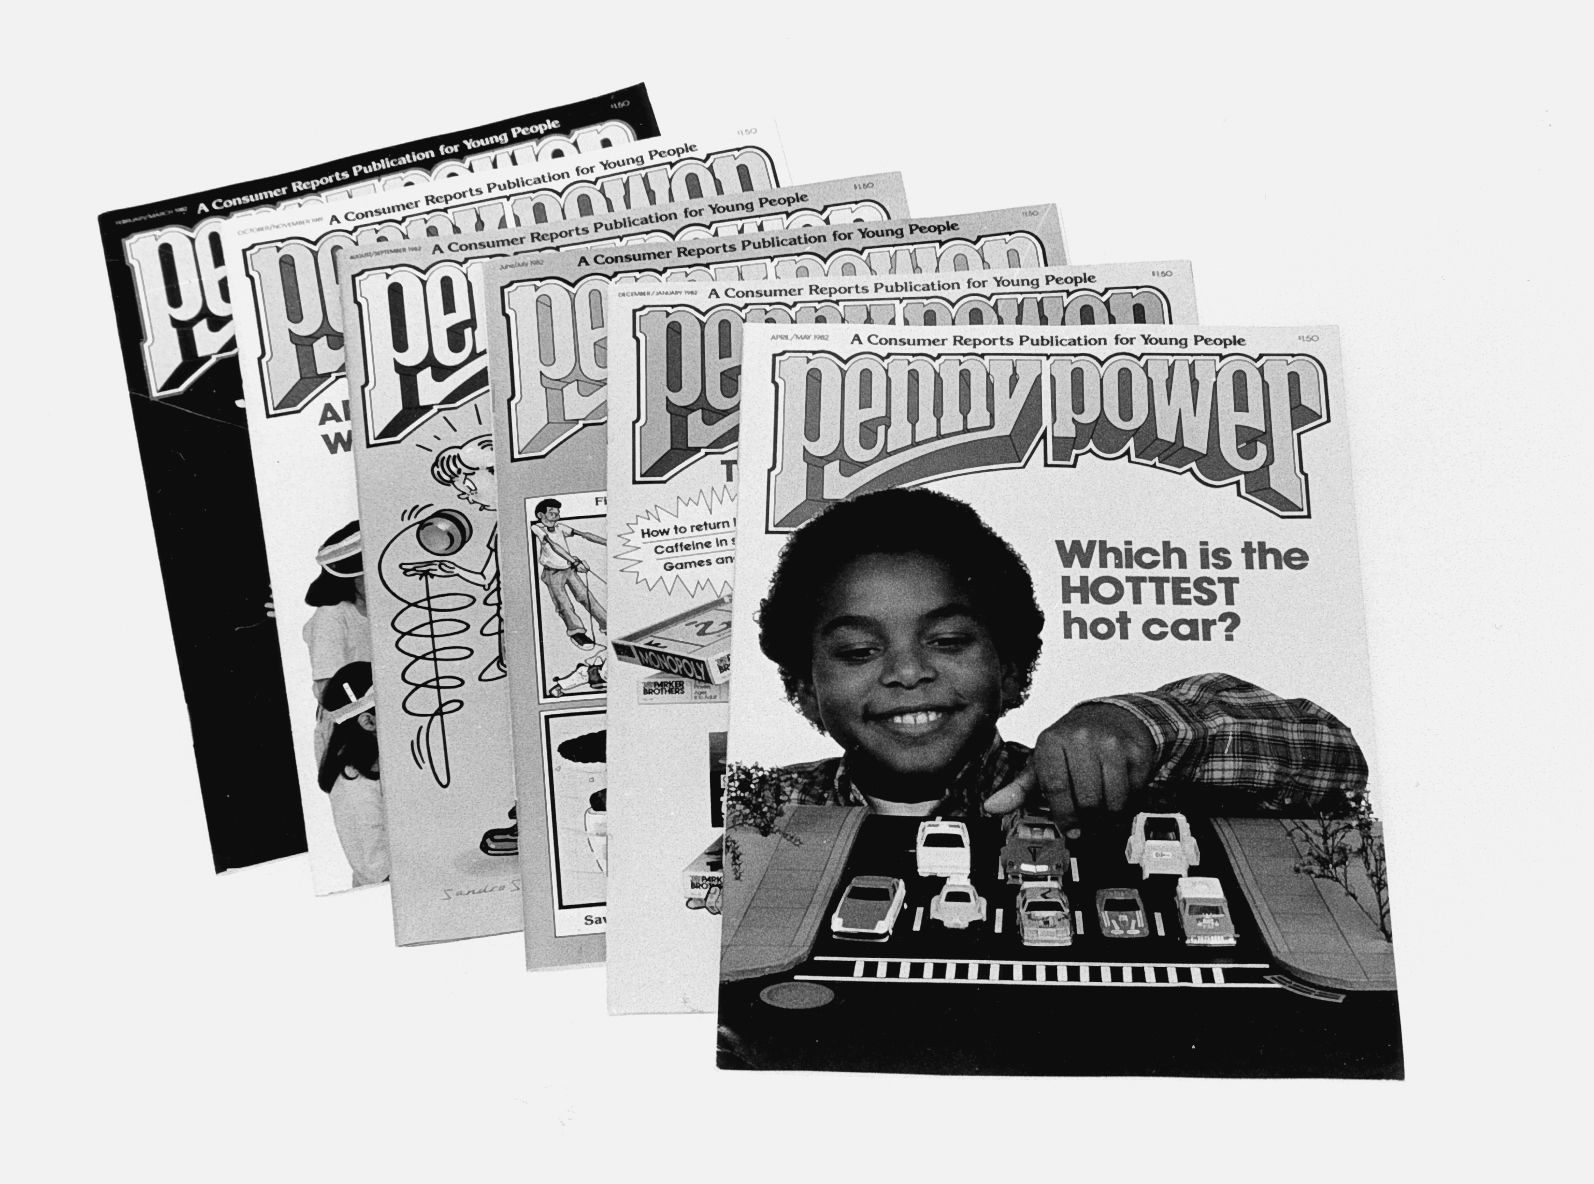 Penny Power, 1980's: Aimed at educating younger consumers to prepare them for the marketplace, Penny Power (later named Zillions) focused on topics such as what backpacks video games and snack foods to buy and how to save money from a summer or part-time job.